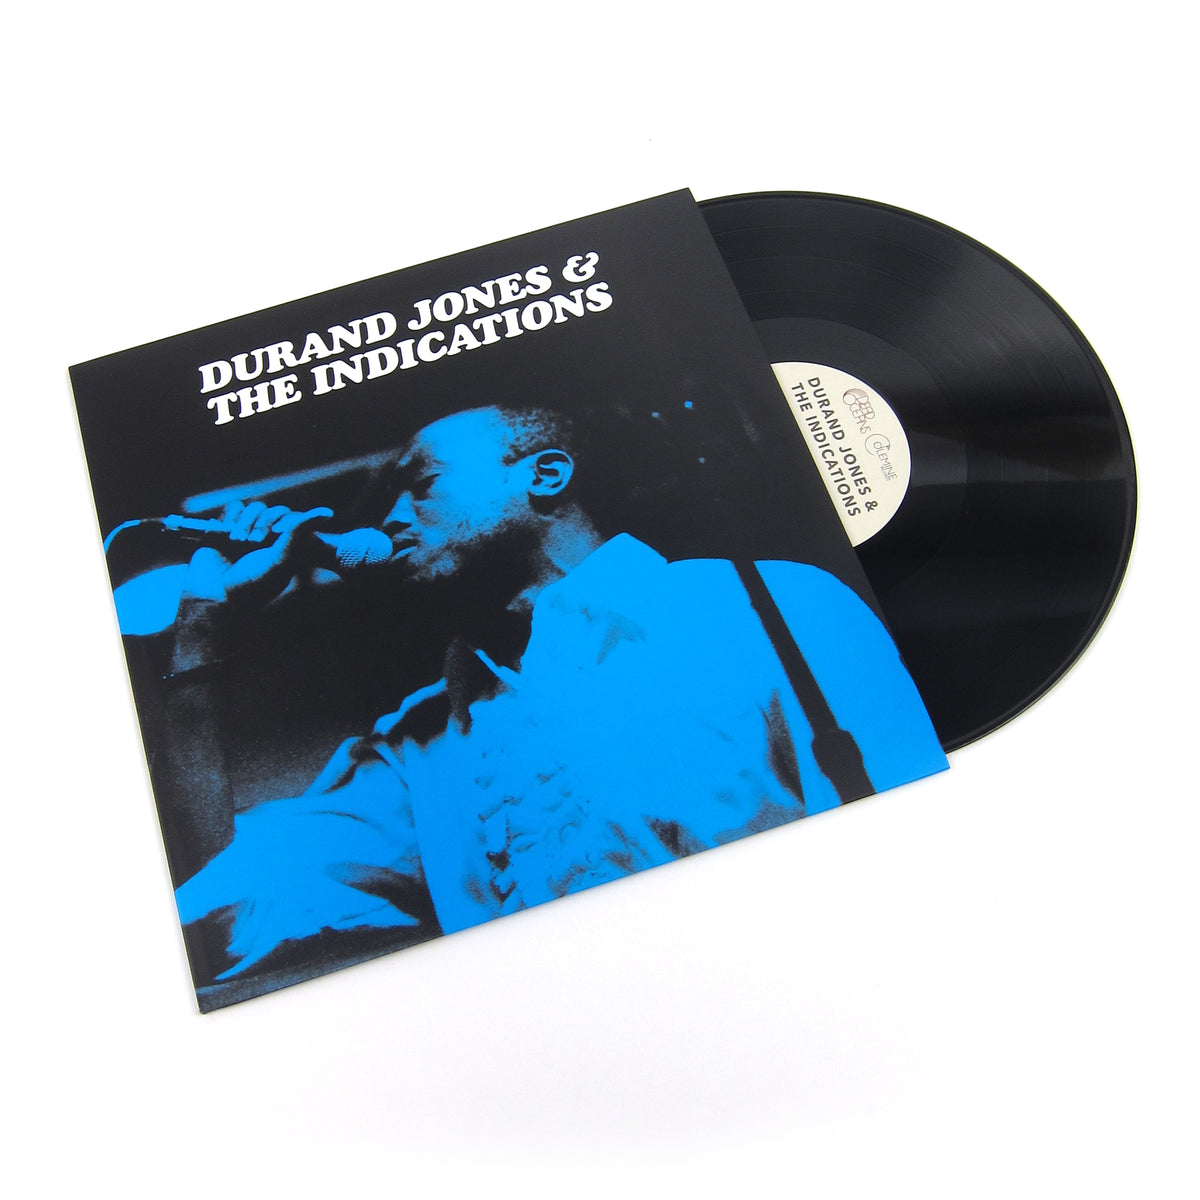 Durand Jones & The Indications: Durand Jones & The Indications Vinyl LP